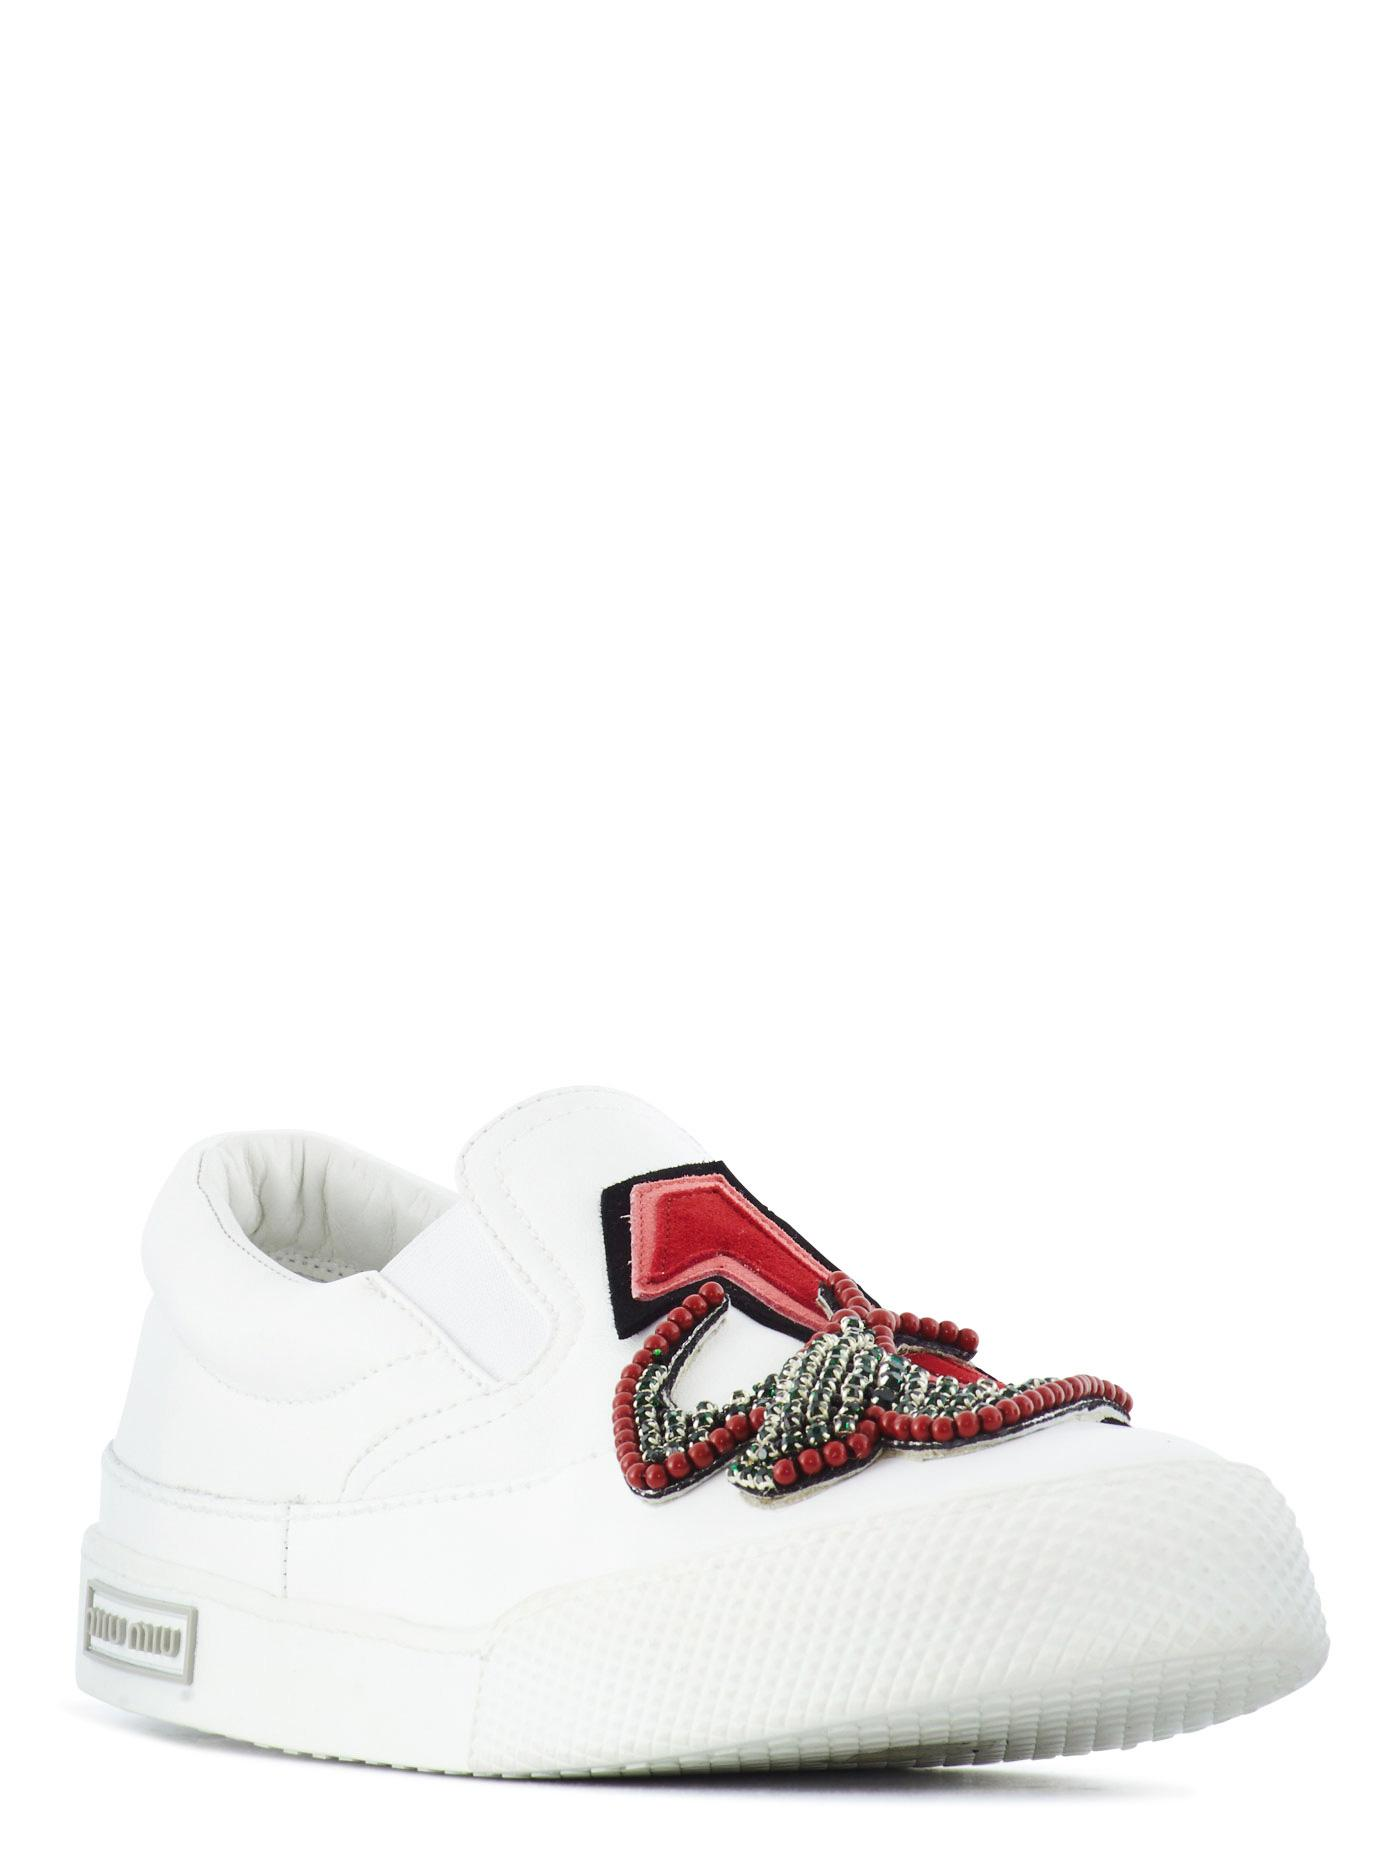 Miu Miu Embroidered Slip On Leather Sneakers in White